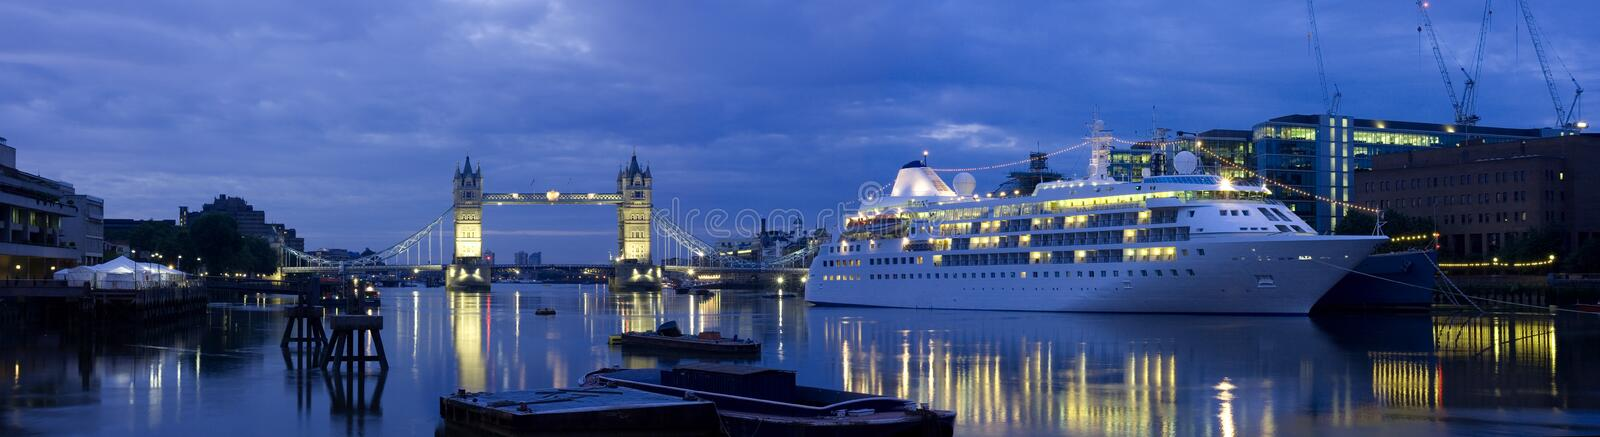 Tower Bridge and Cruise Liner stock photography